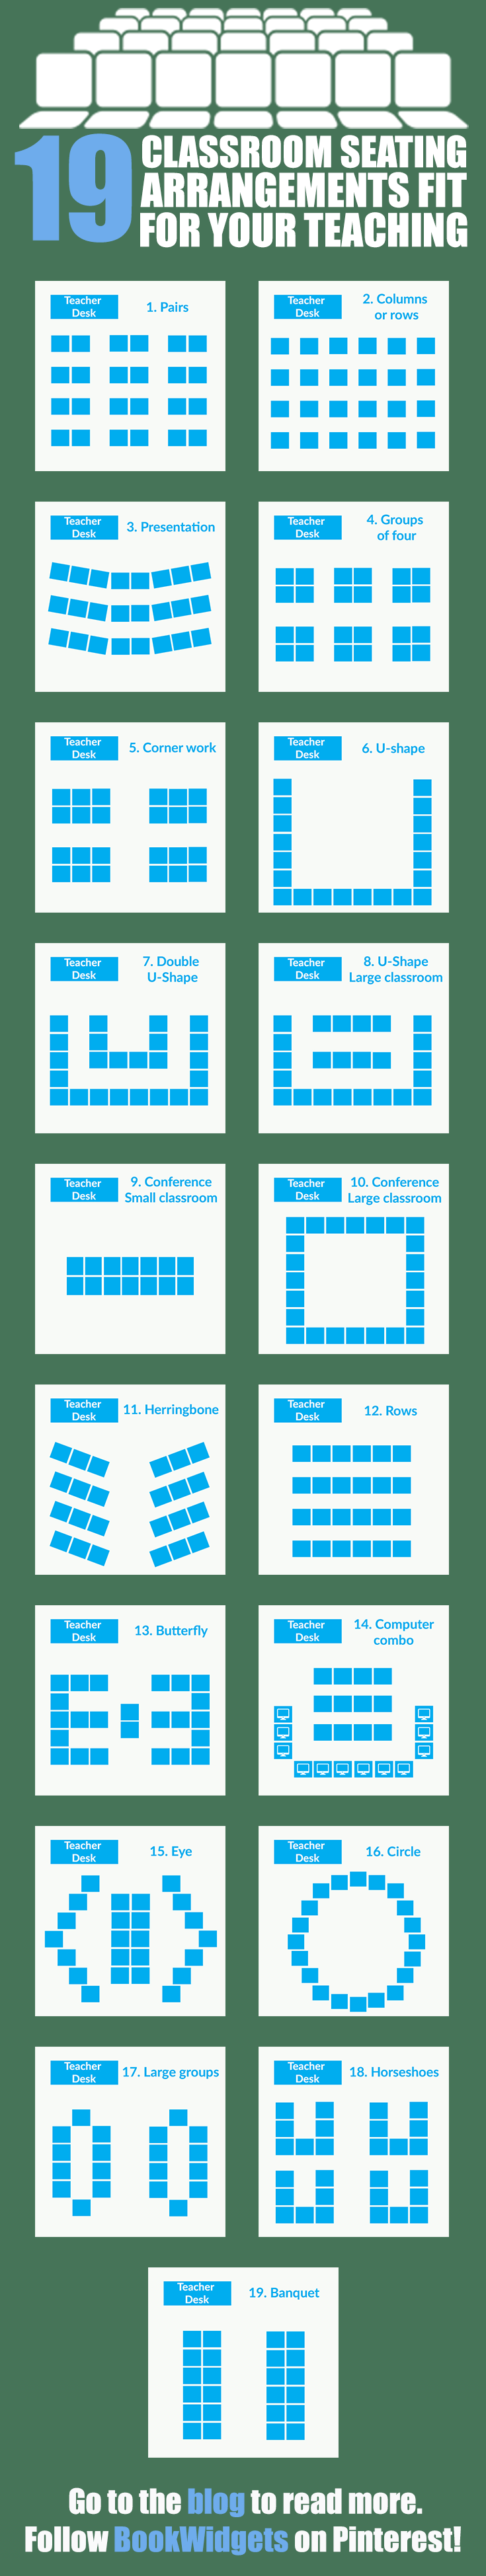 19 types of seating arrangments for the classroom